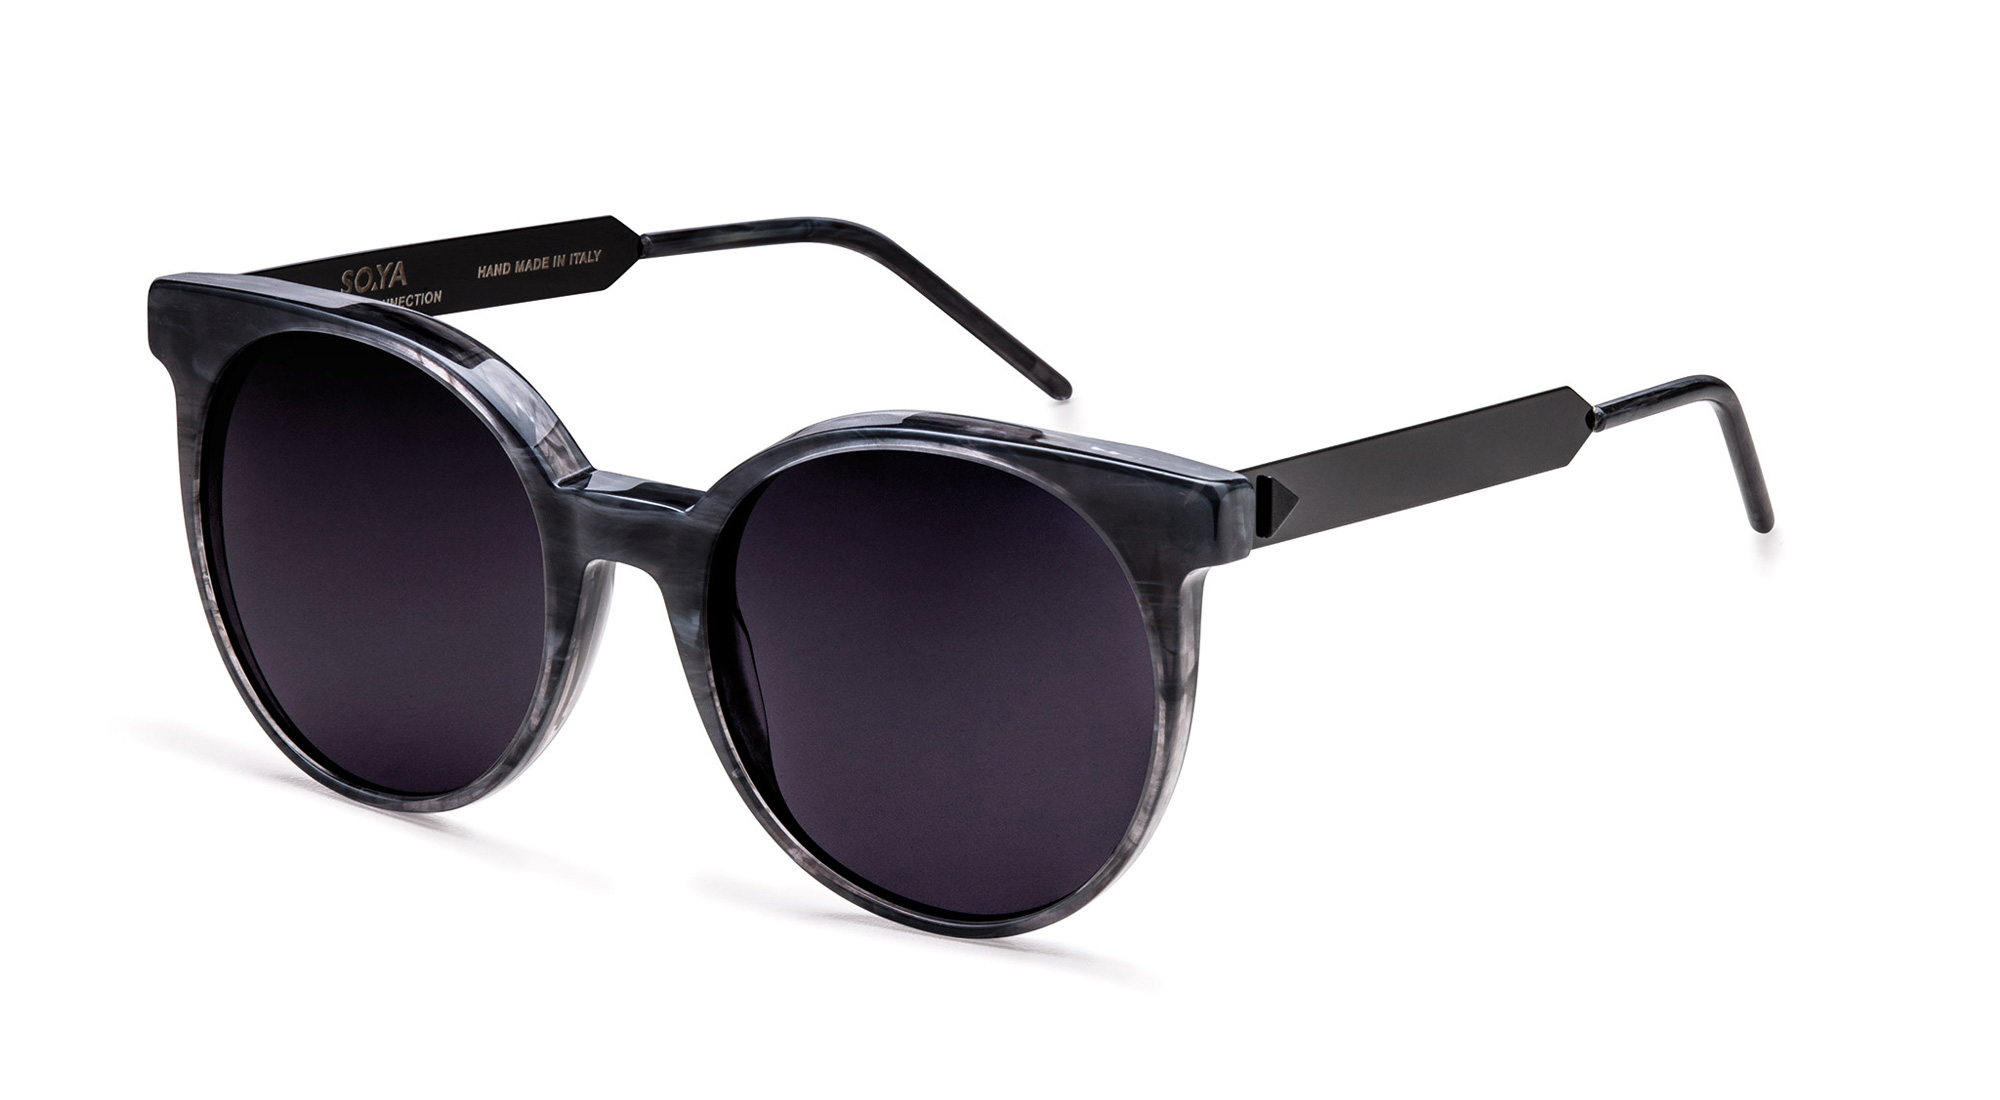 JULIETTE_Eyewear_SOYA_BlackMarble_3-4View